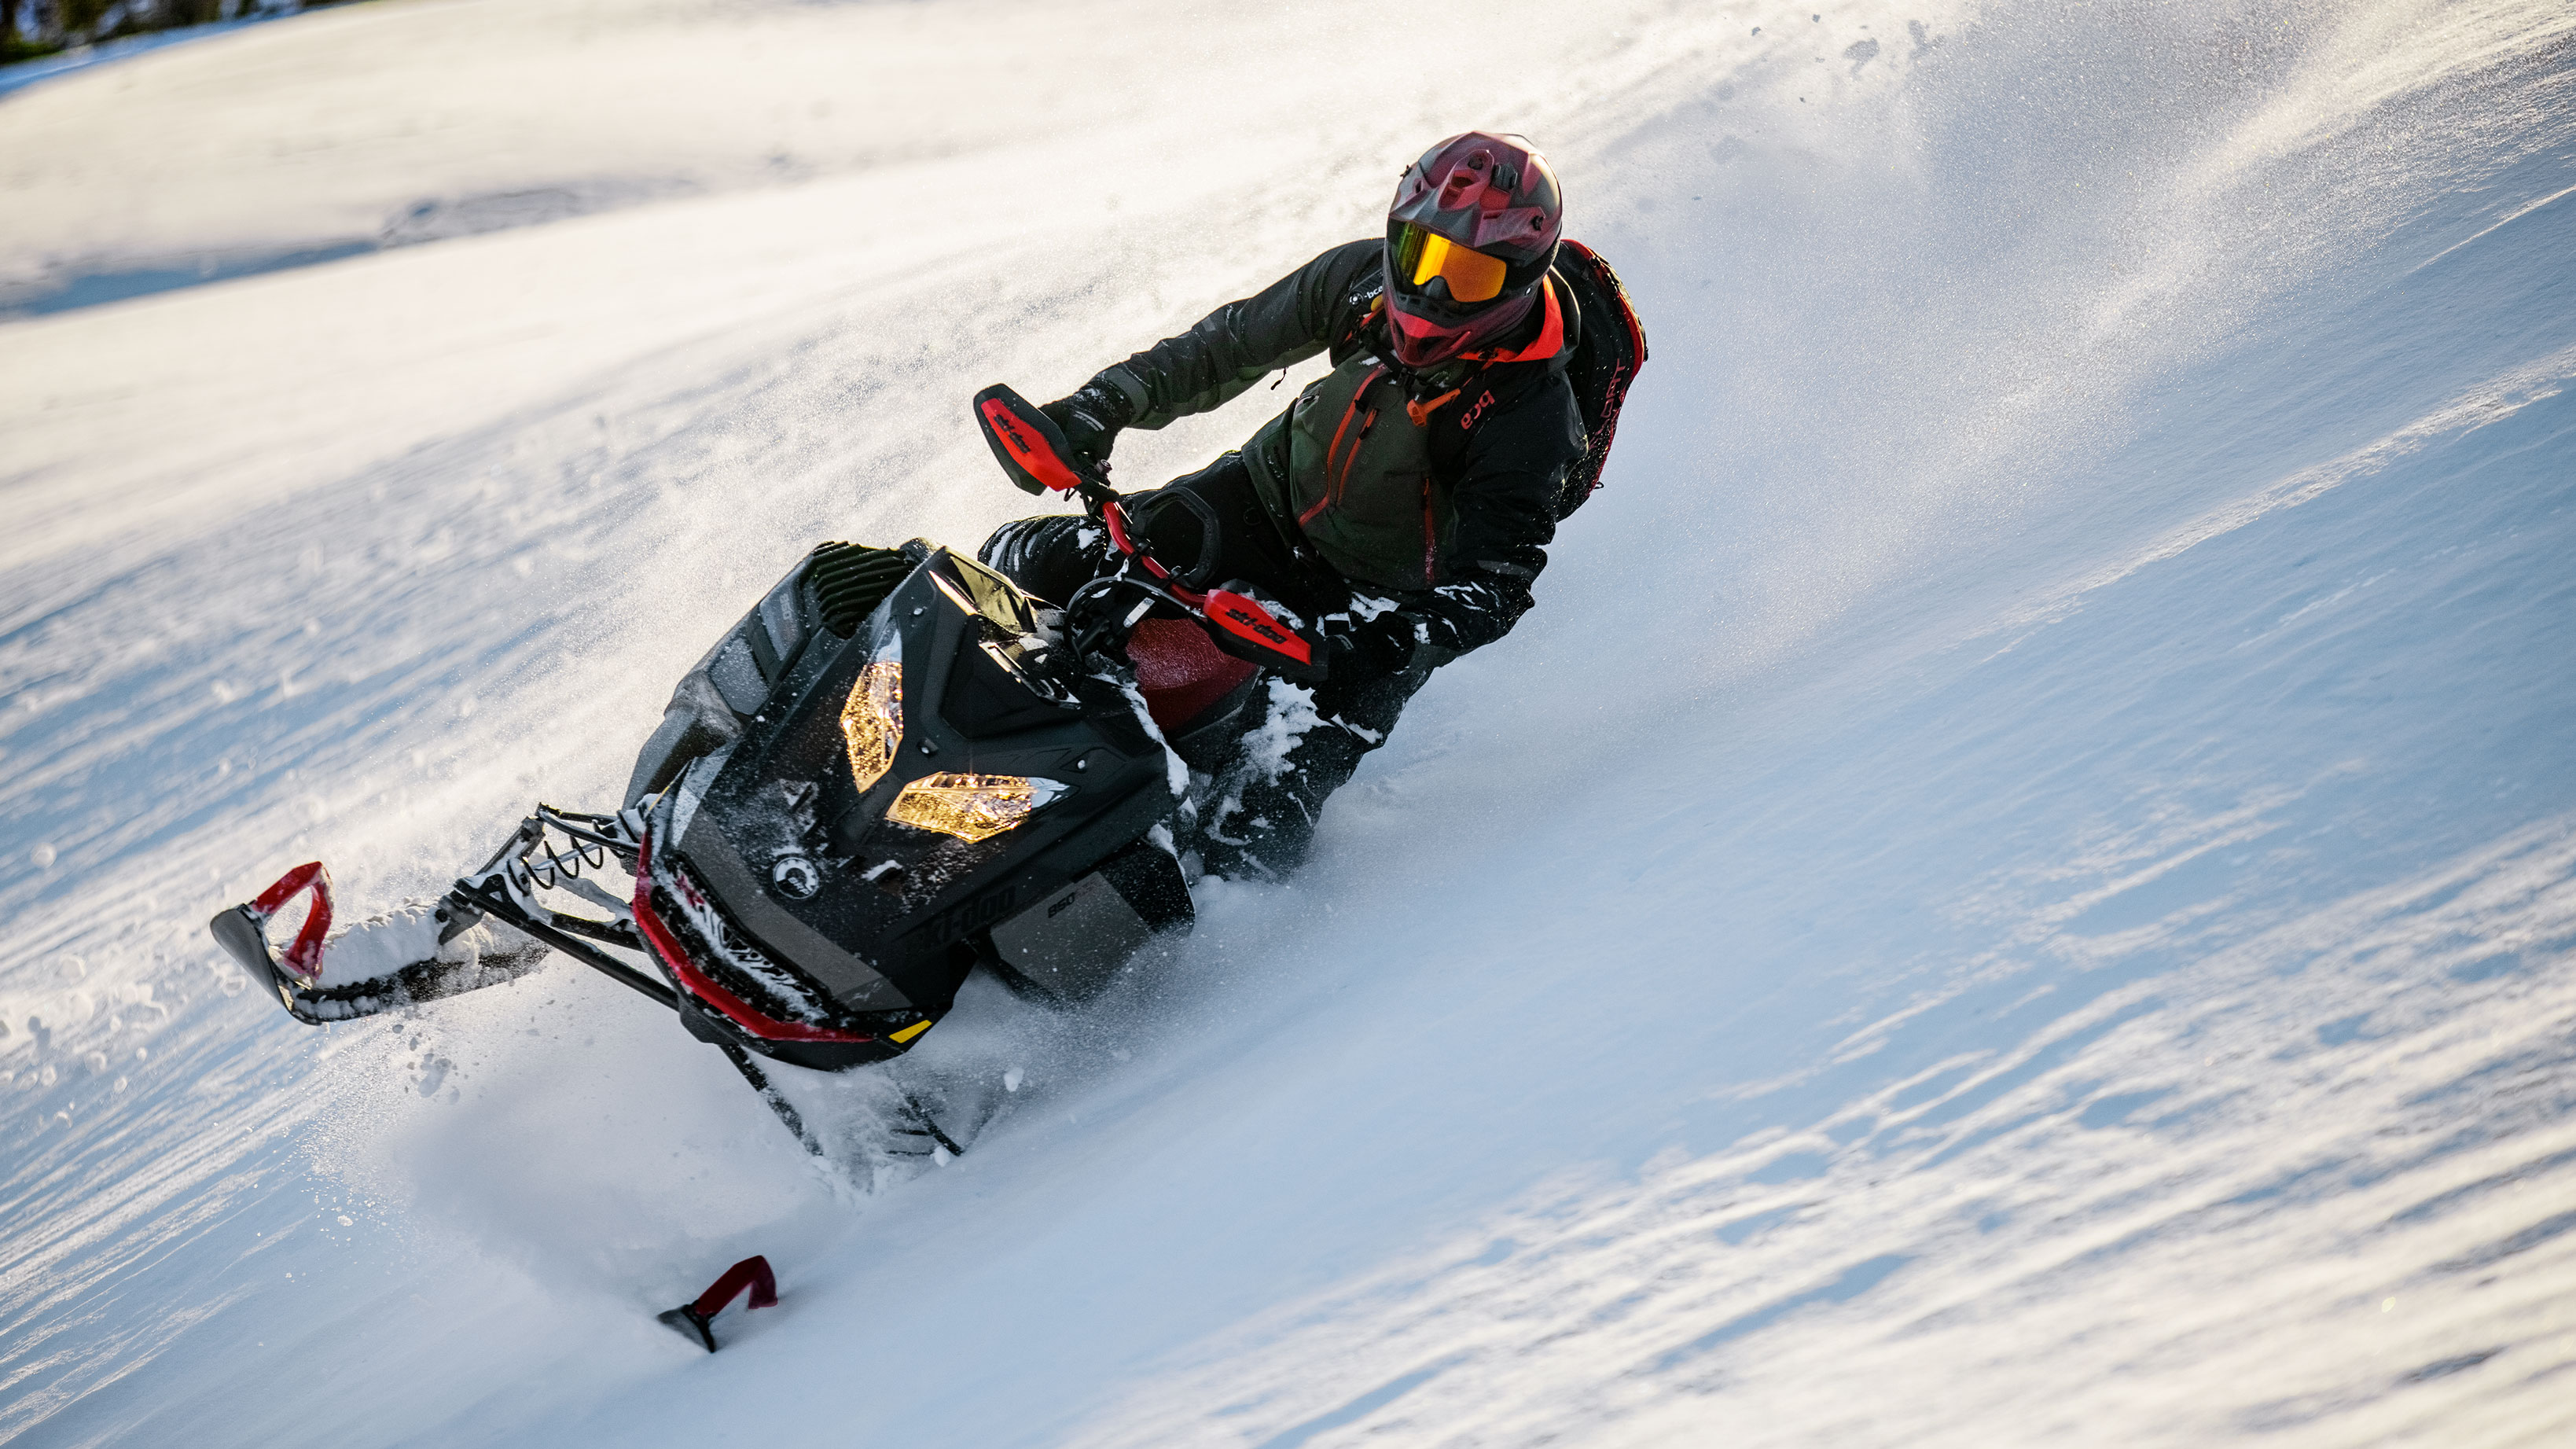 Man riding deep snow with his 2022 Ski-Doo Summit